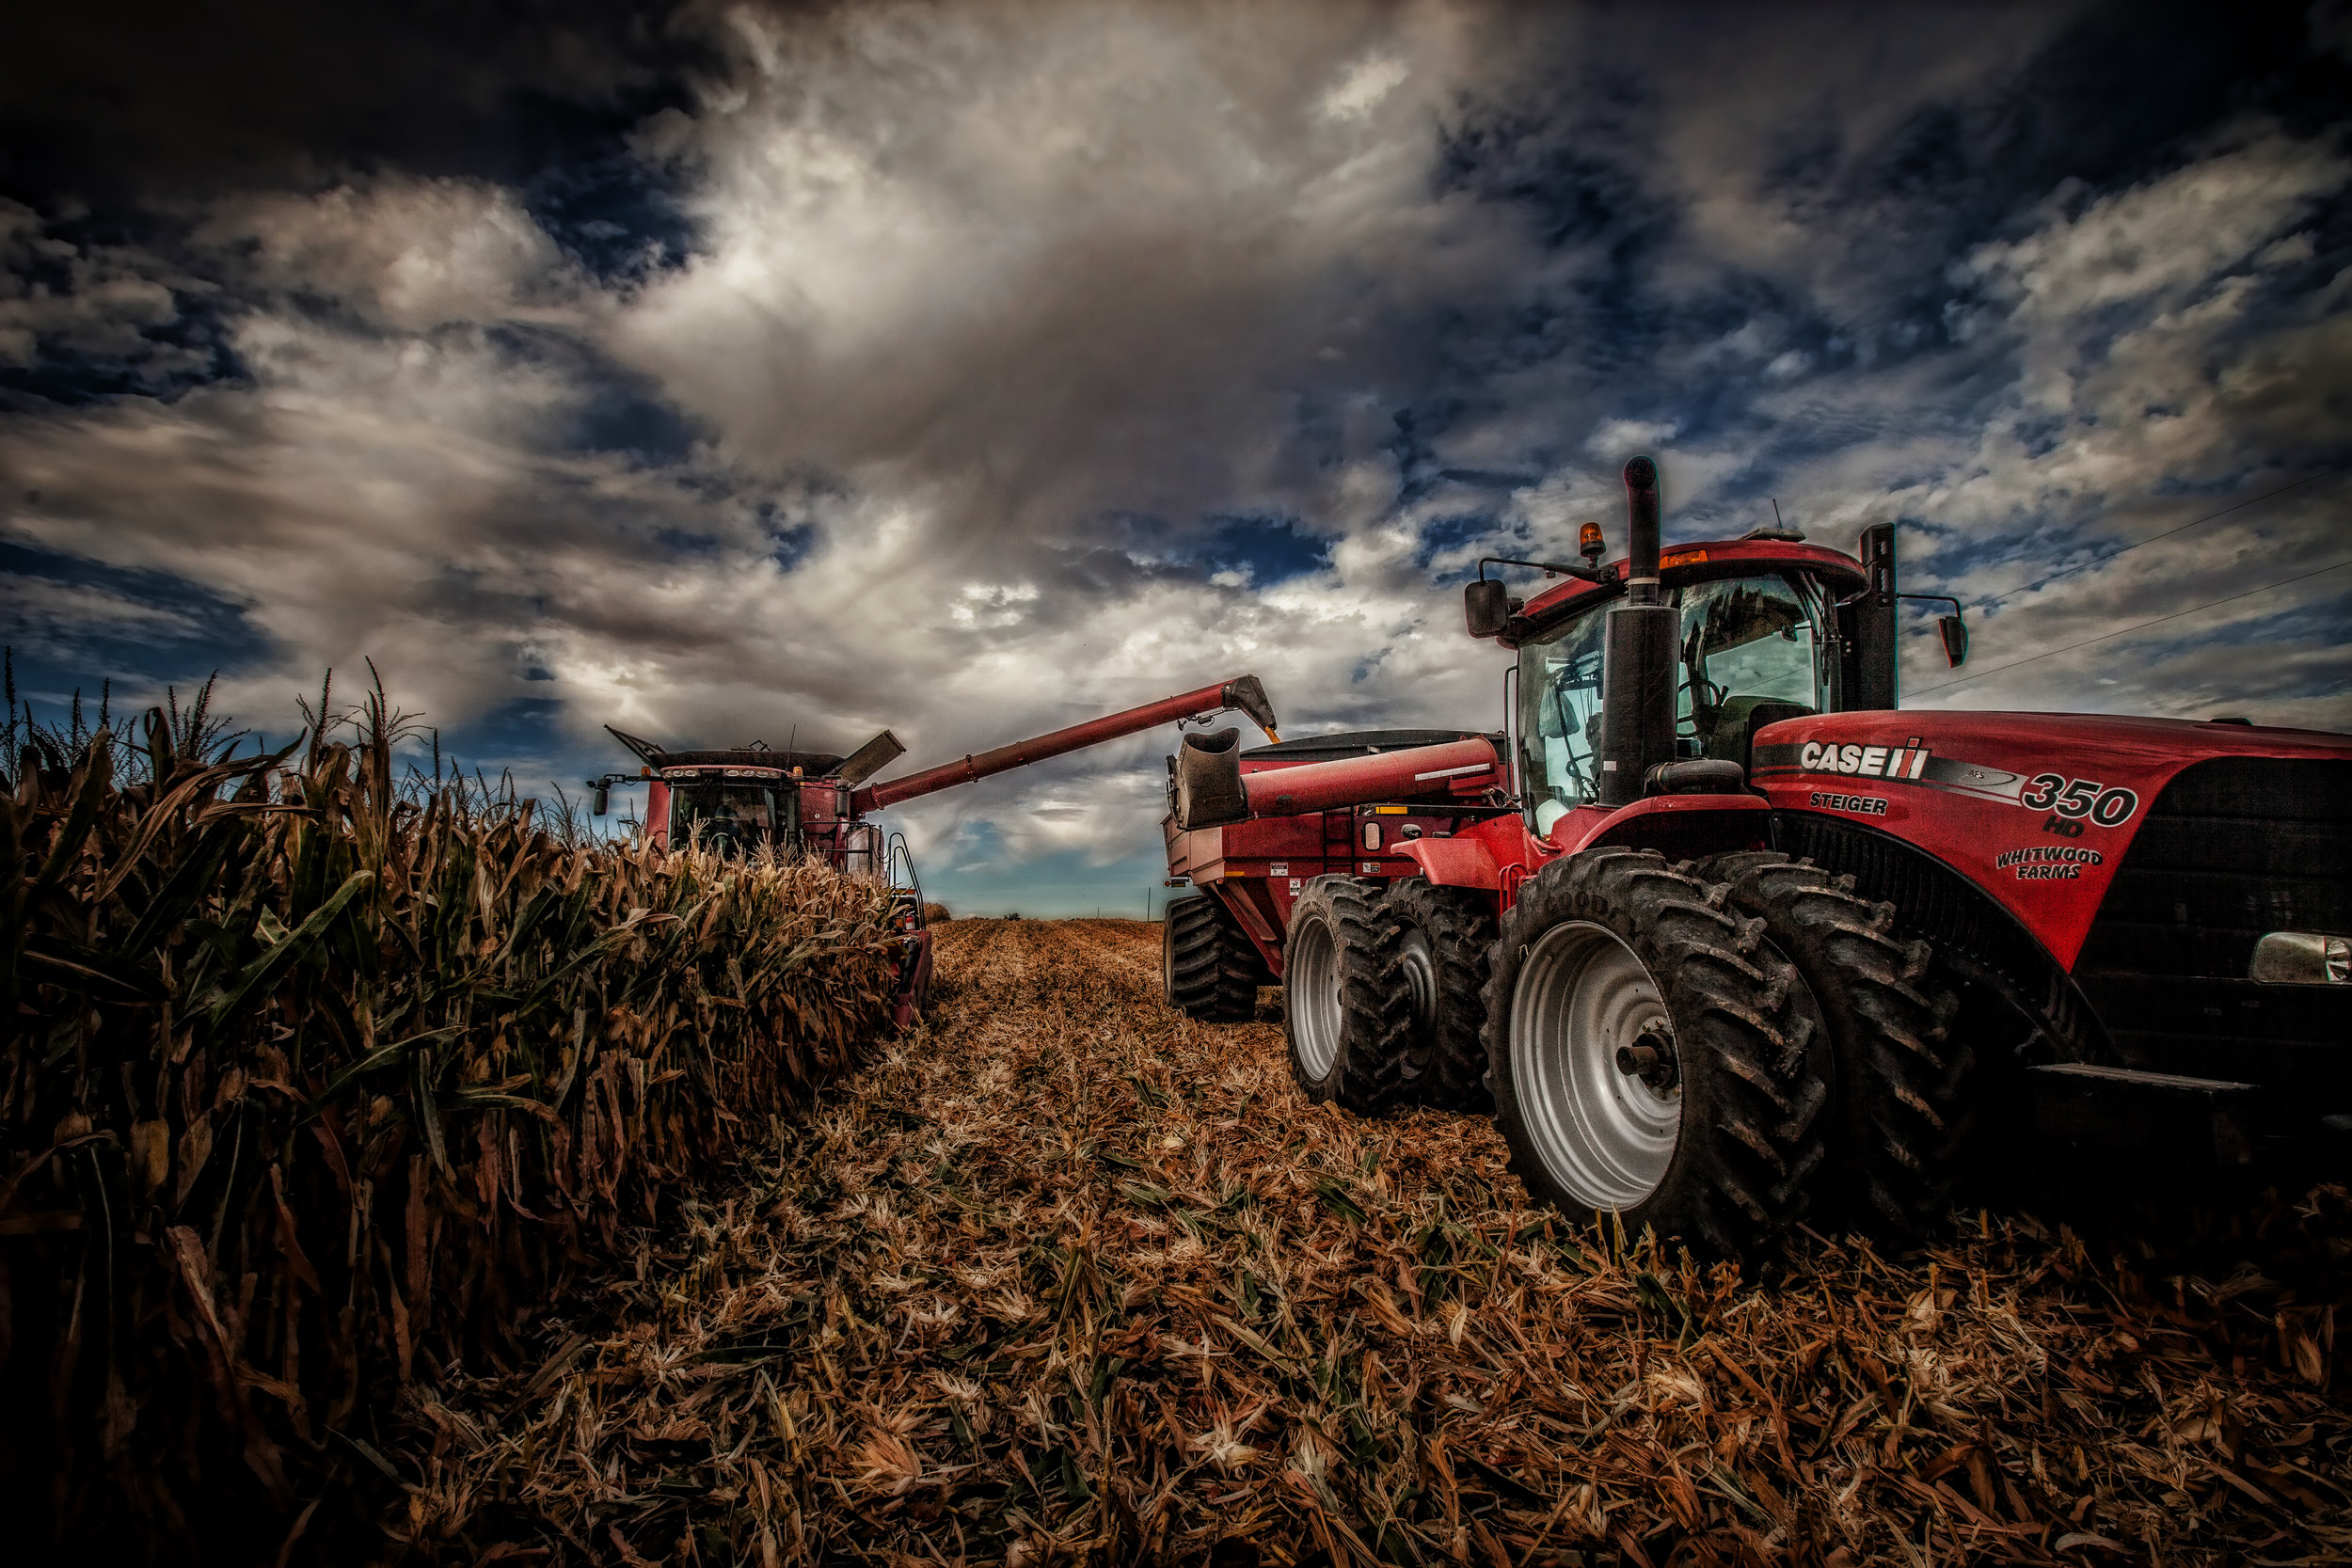 Image of corn being harvested by combine and dumping onto grain cart pulled by tractor.  Image by Steven Baird